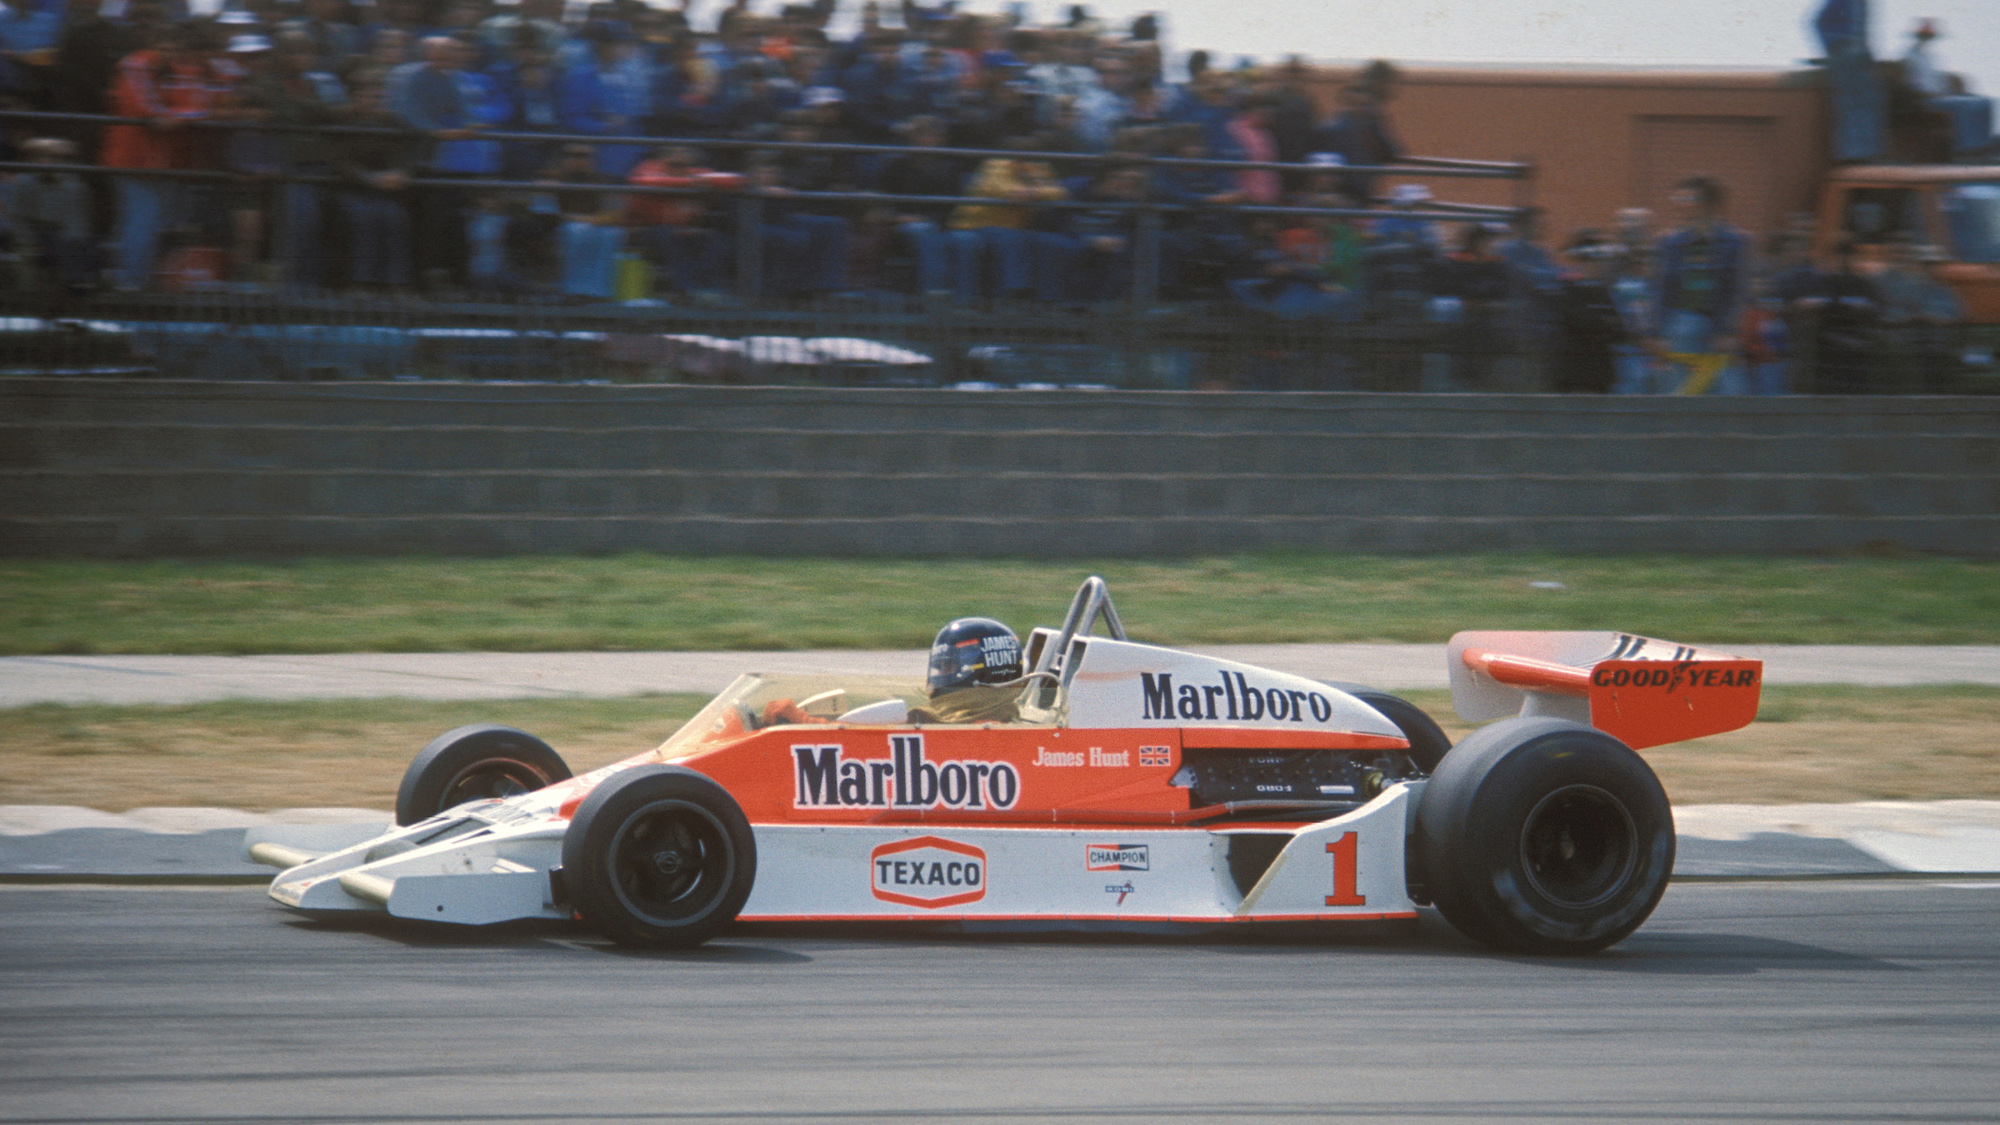 James Hunt's McLaren during the 1977 British Grand Prix at Silverstone